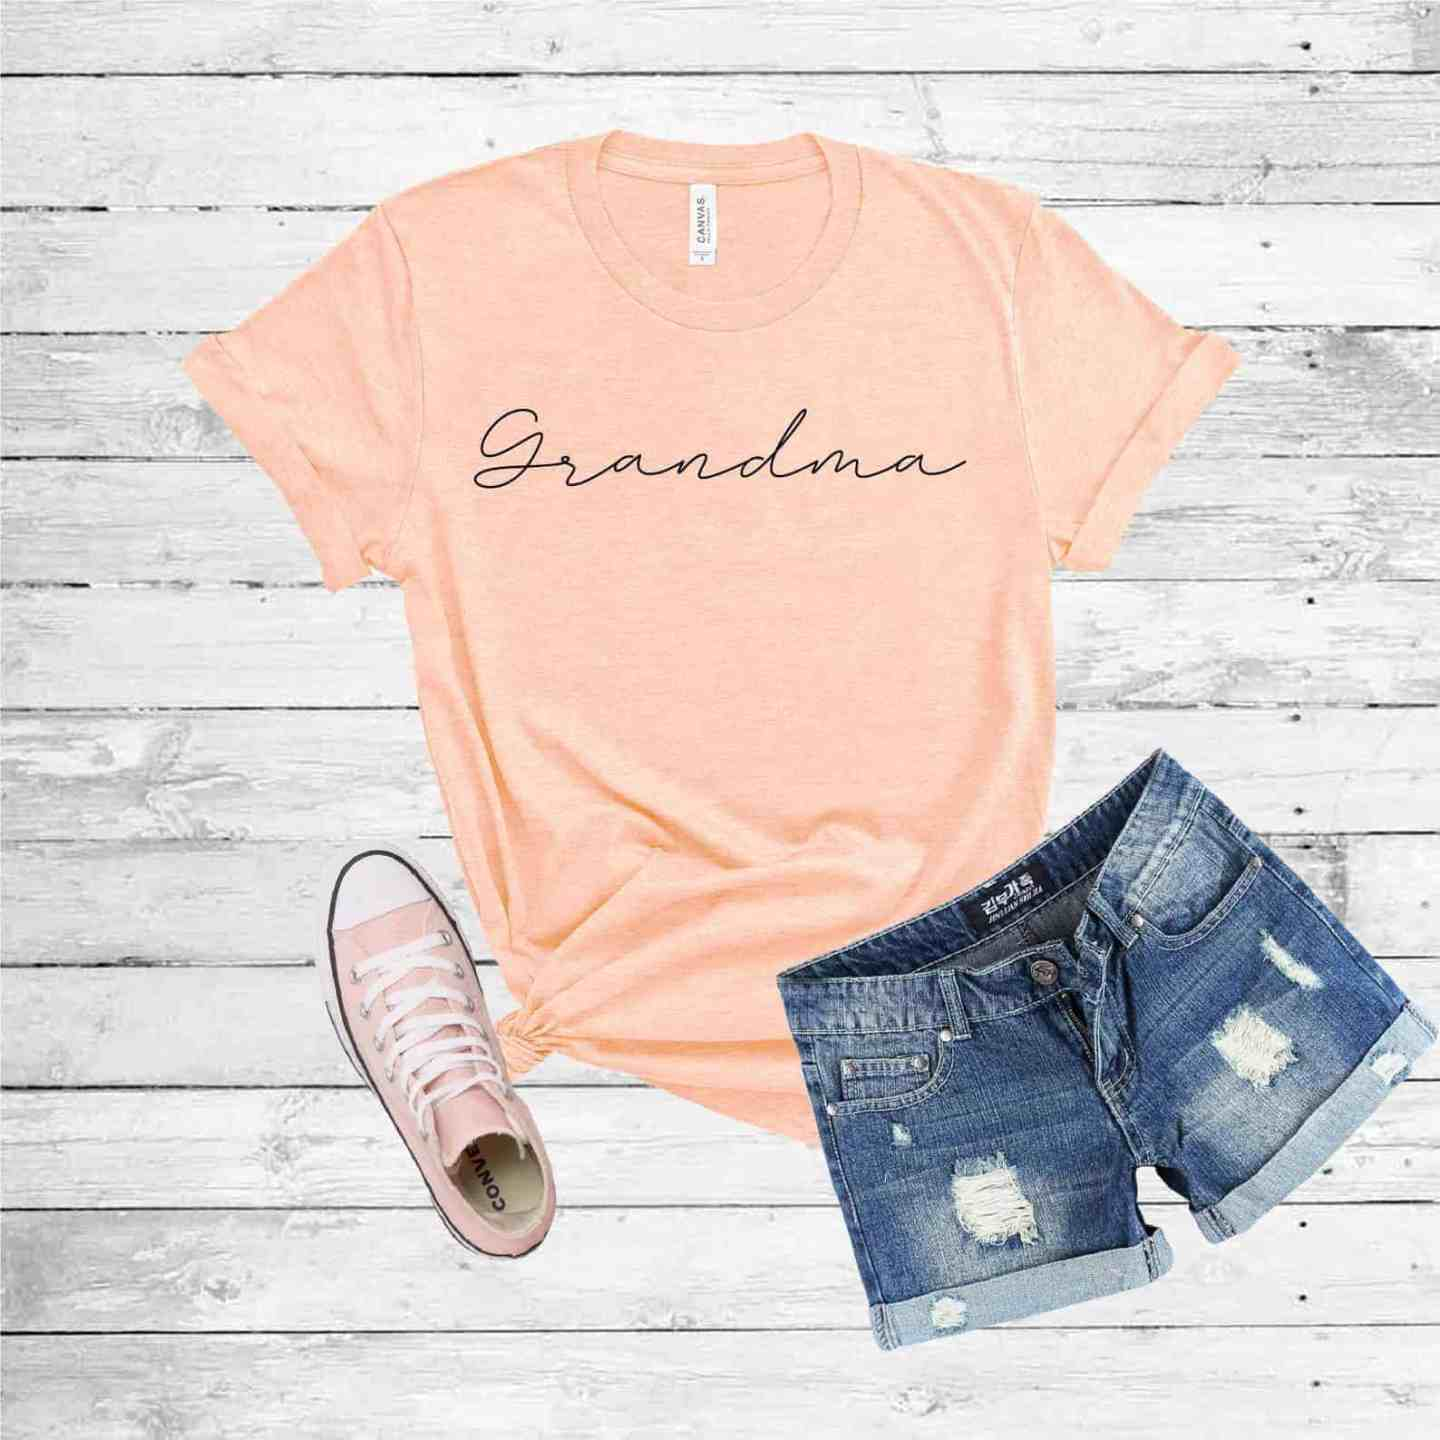 Grandma-Shirt-etsy-mothers-day-gift-ideas